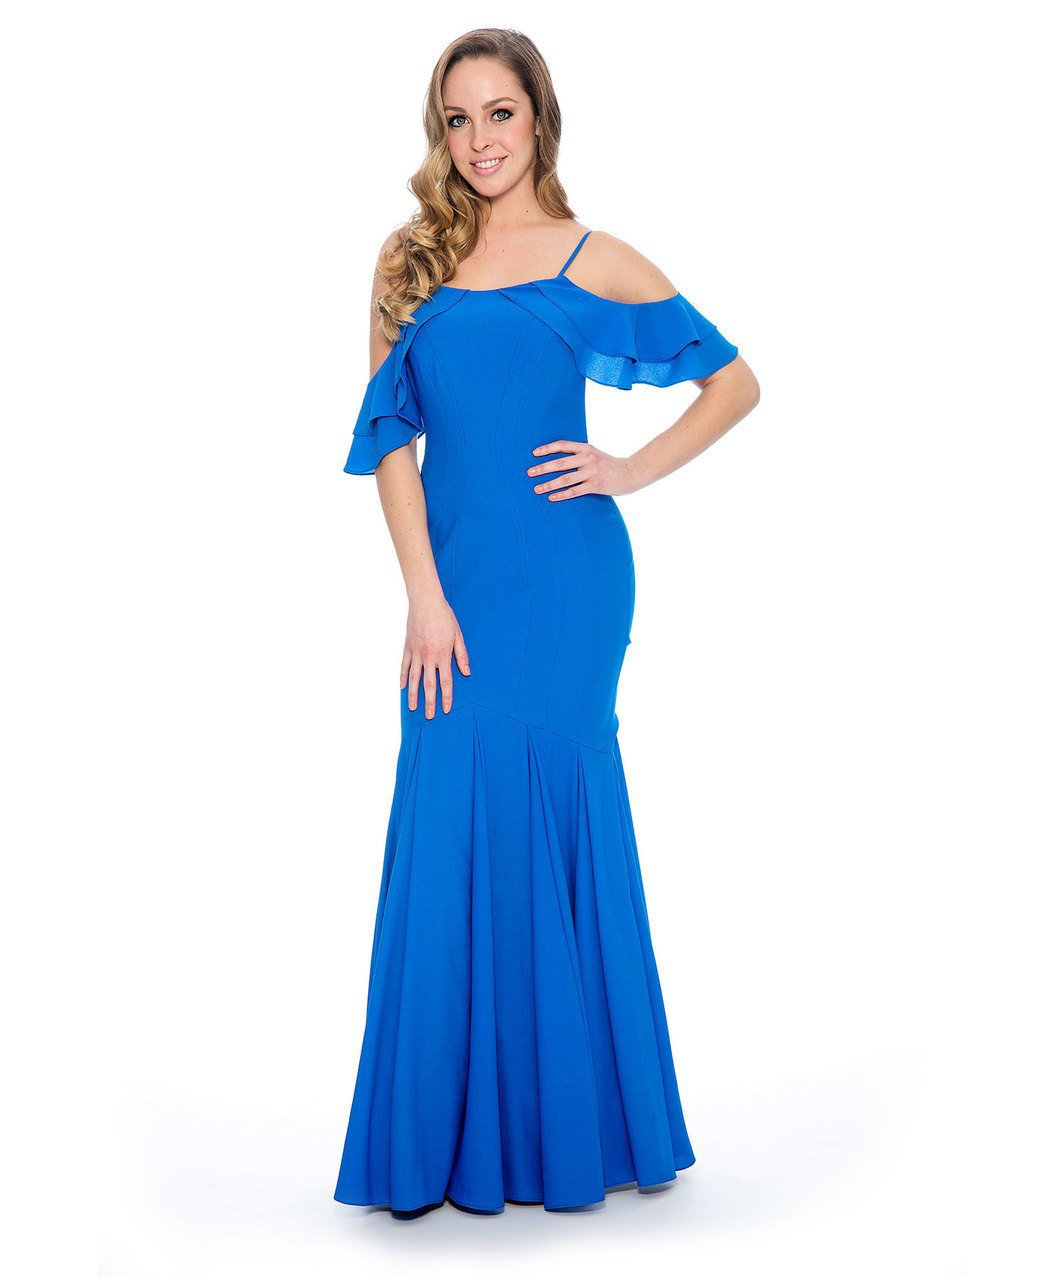 Decode 1.8 - 184081 Strappy Cold Shoulder Mermaid Dress in Blue